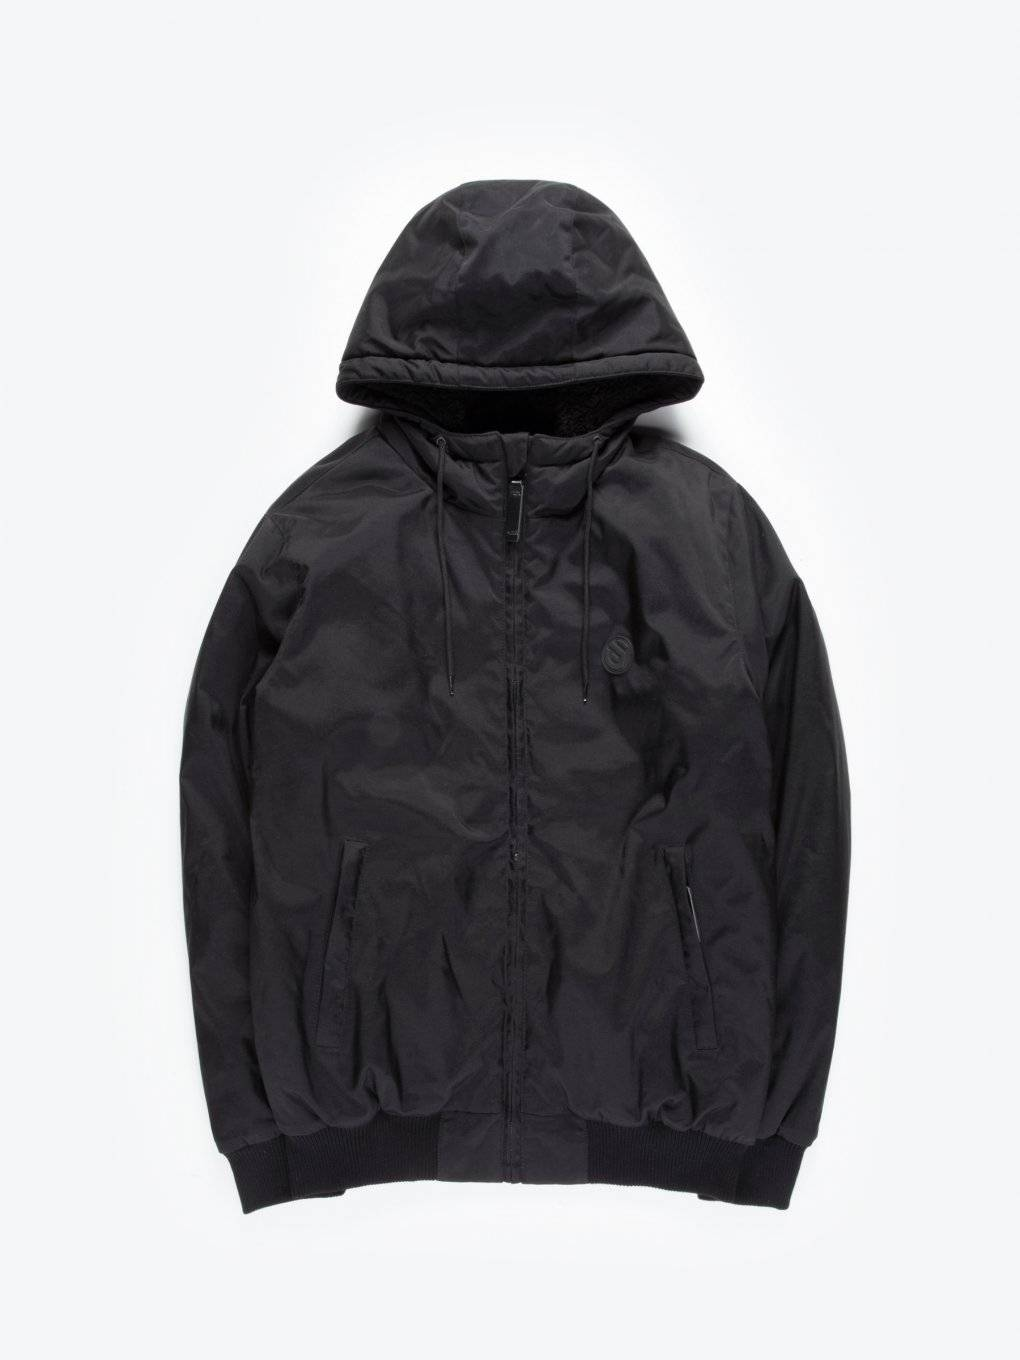 Sherpa lined nylon hooded jacket